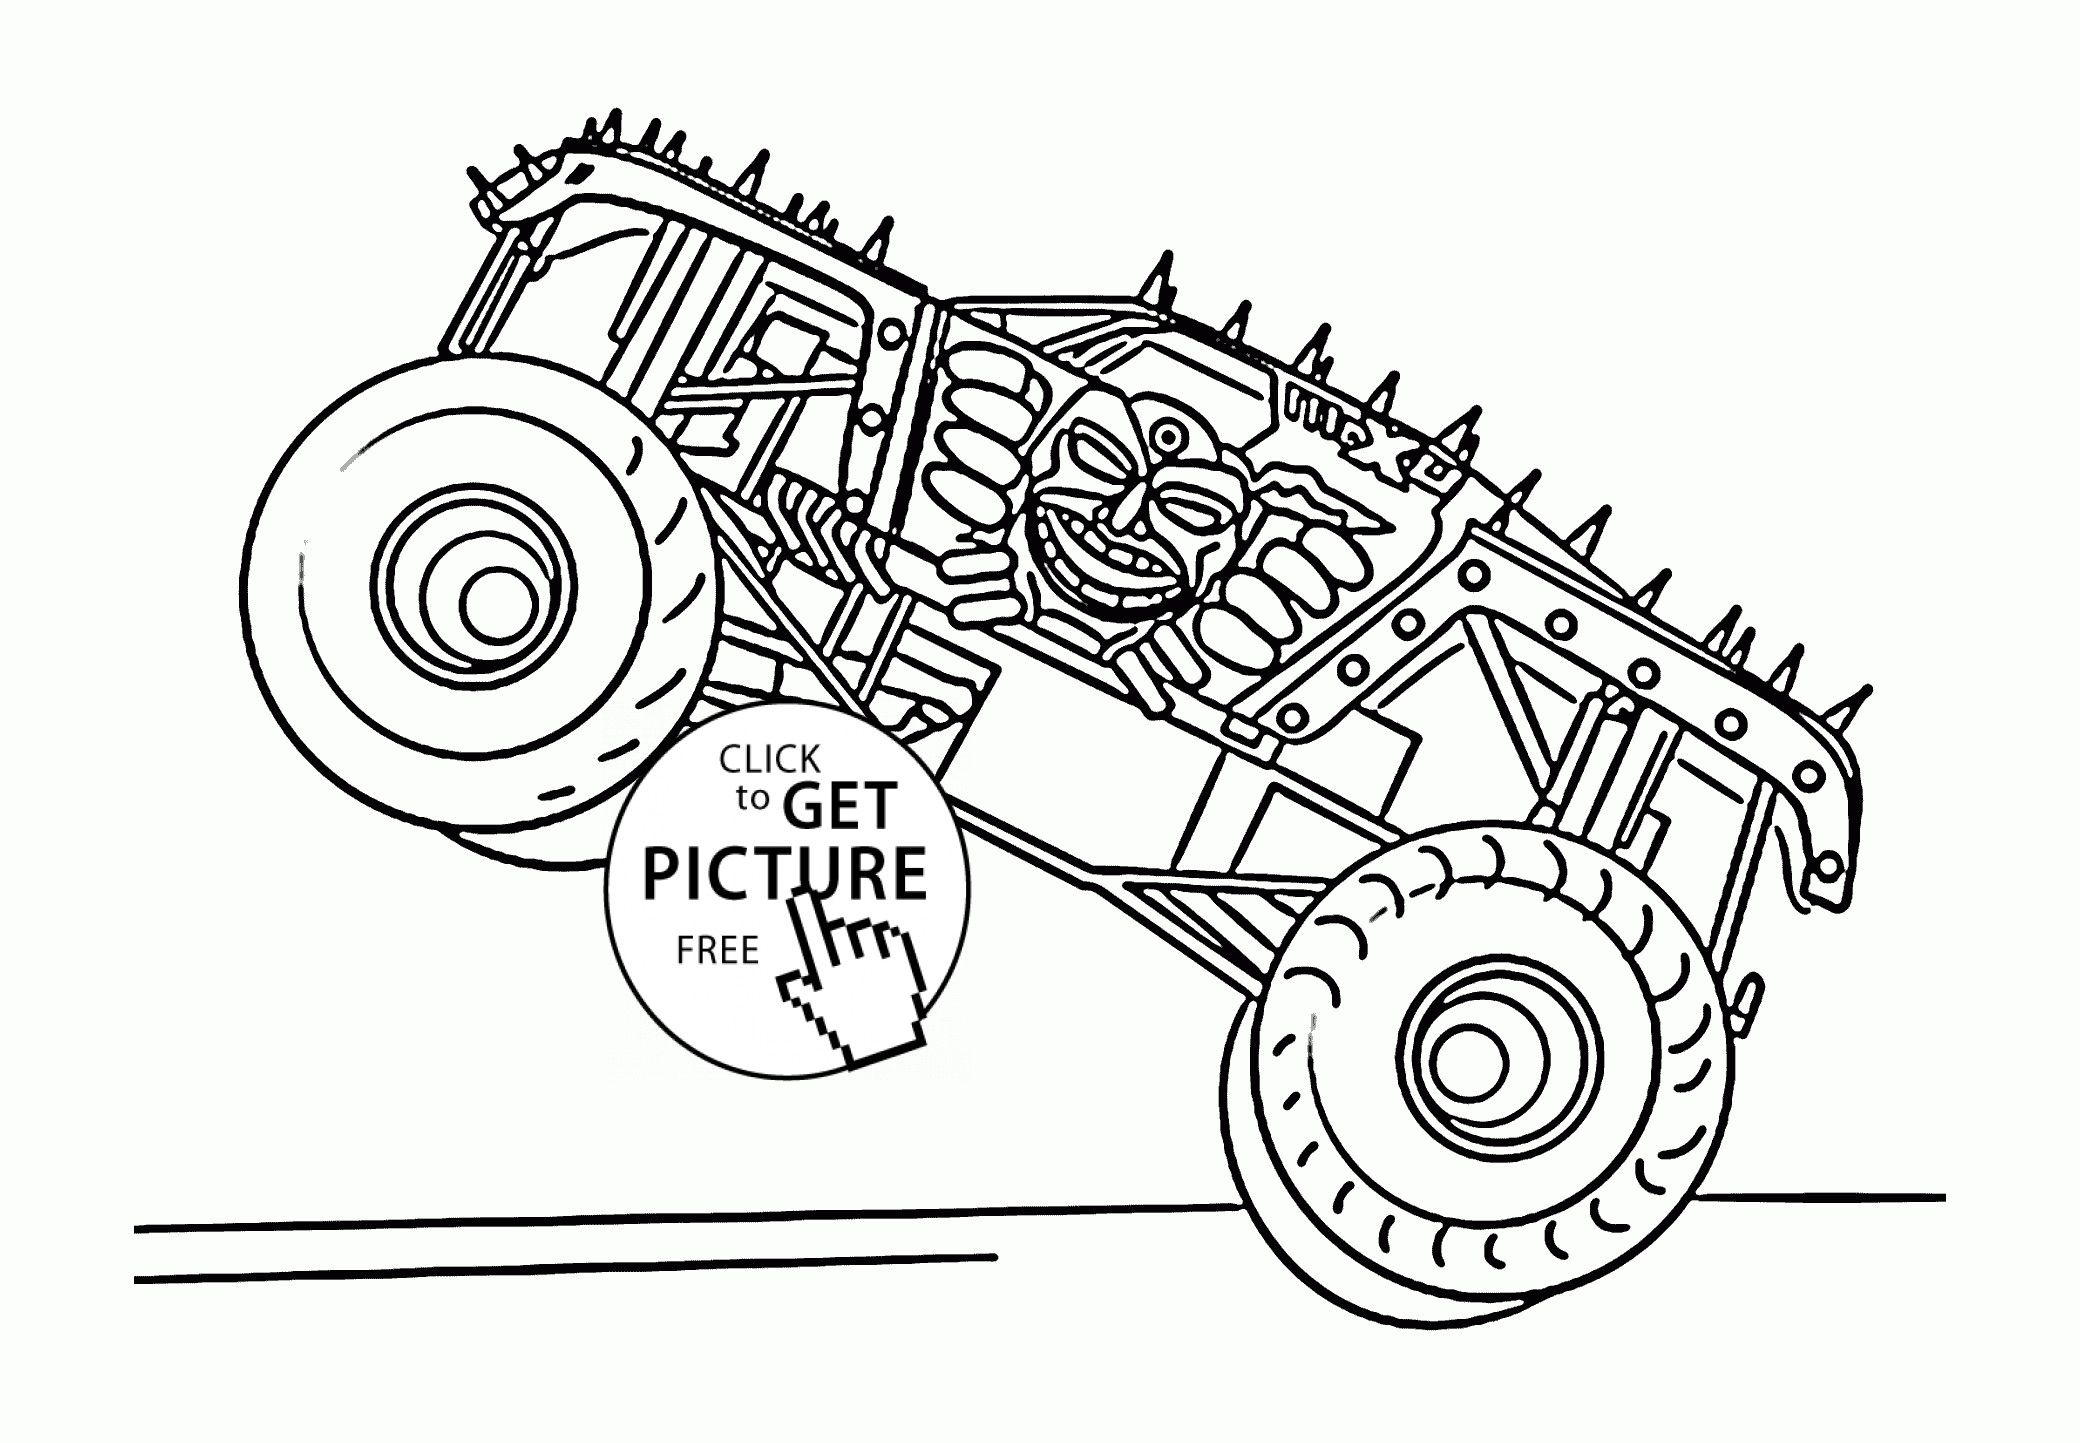 Monster Truck Coloring Book Best Of Coloring Book World Splendi Monster Truck Coloring Sheet Monster Truck Coloring Pages Truck Coloring Pages Coloring Books